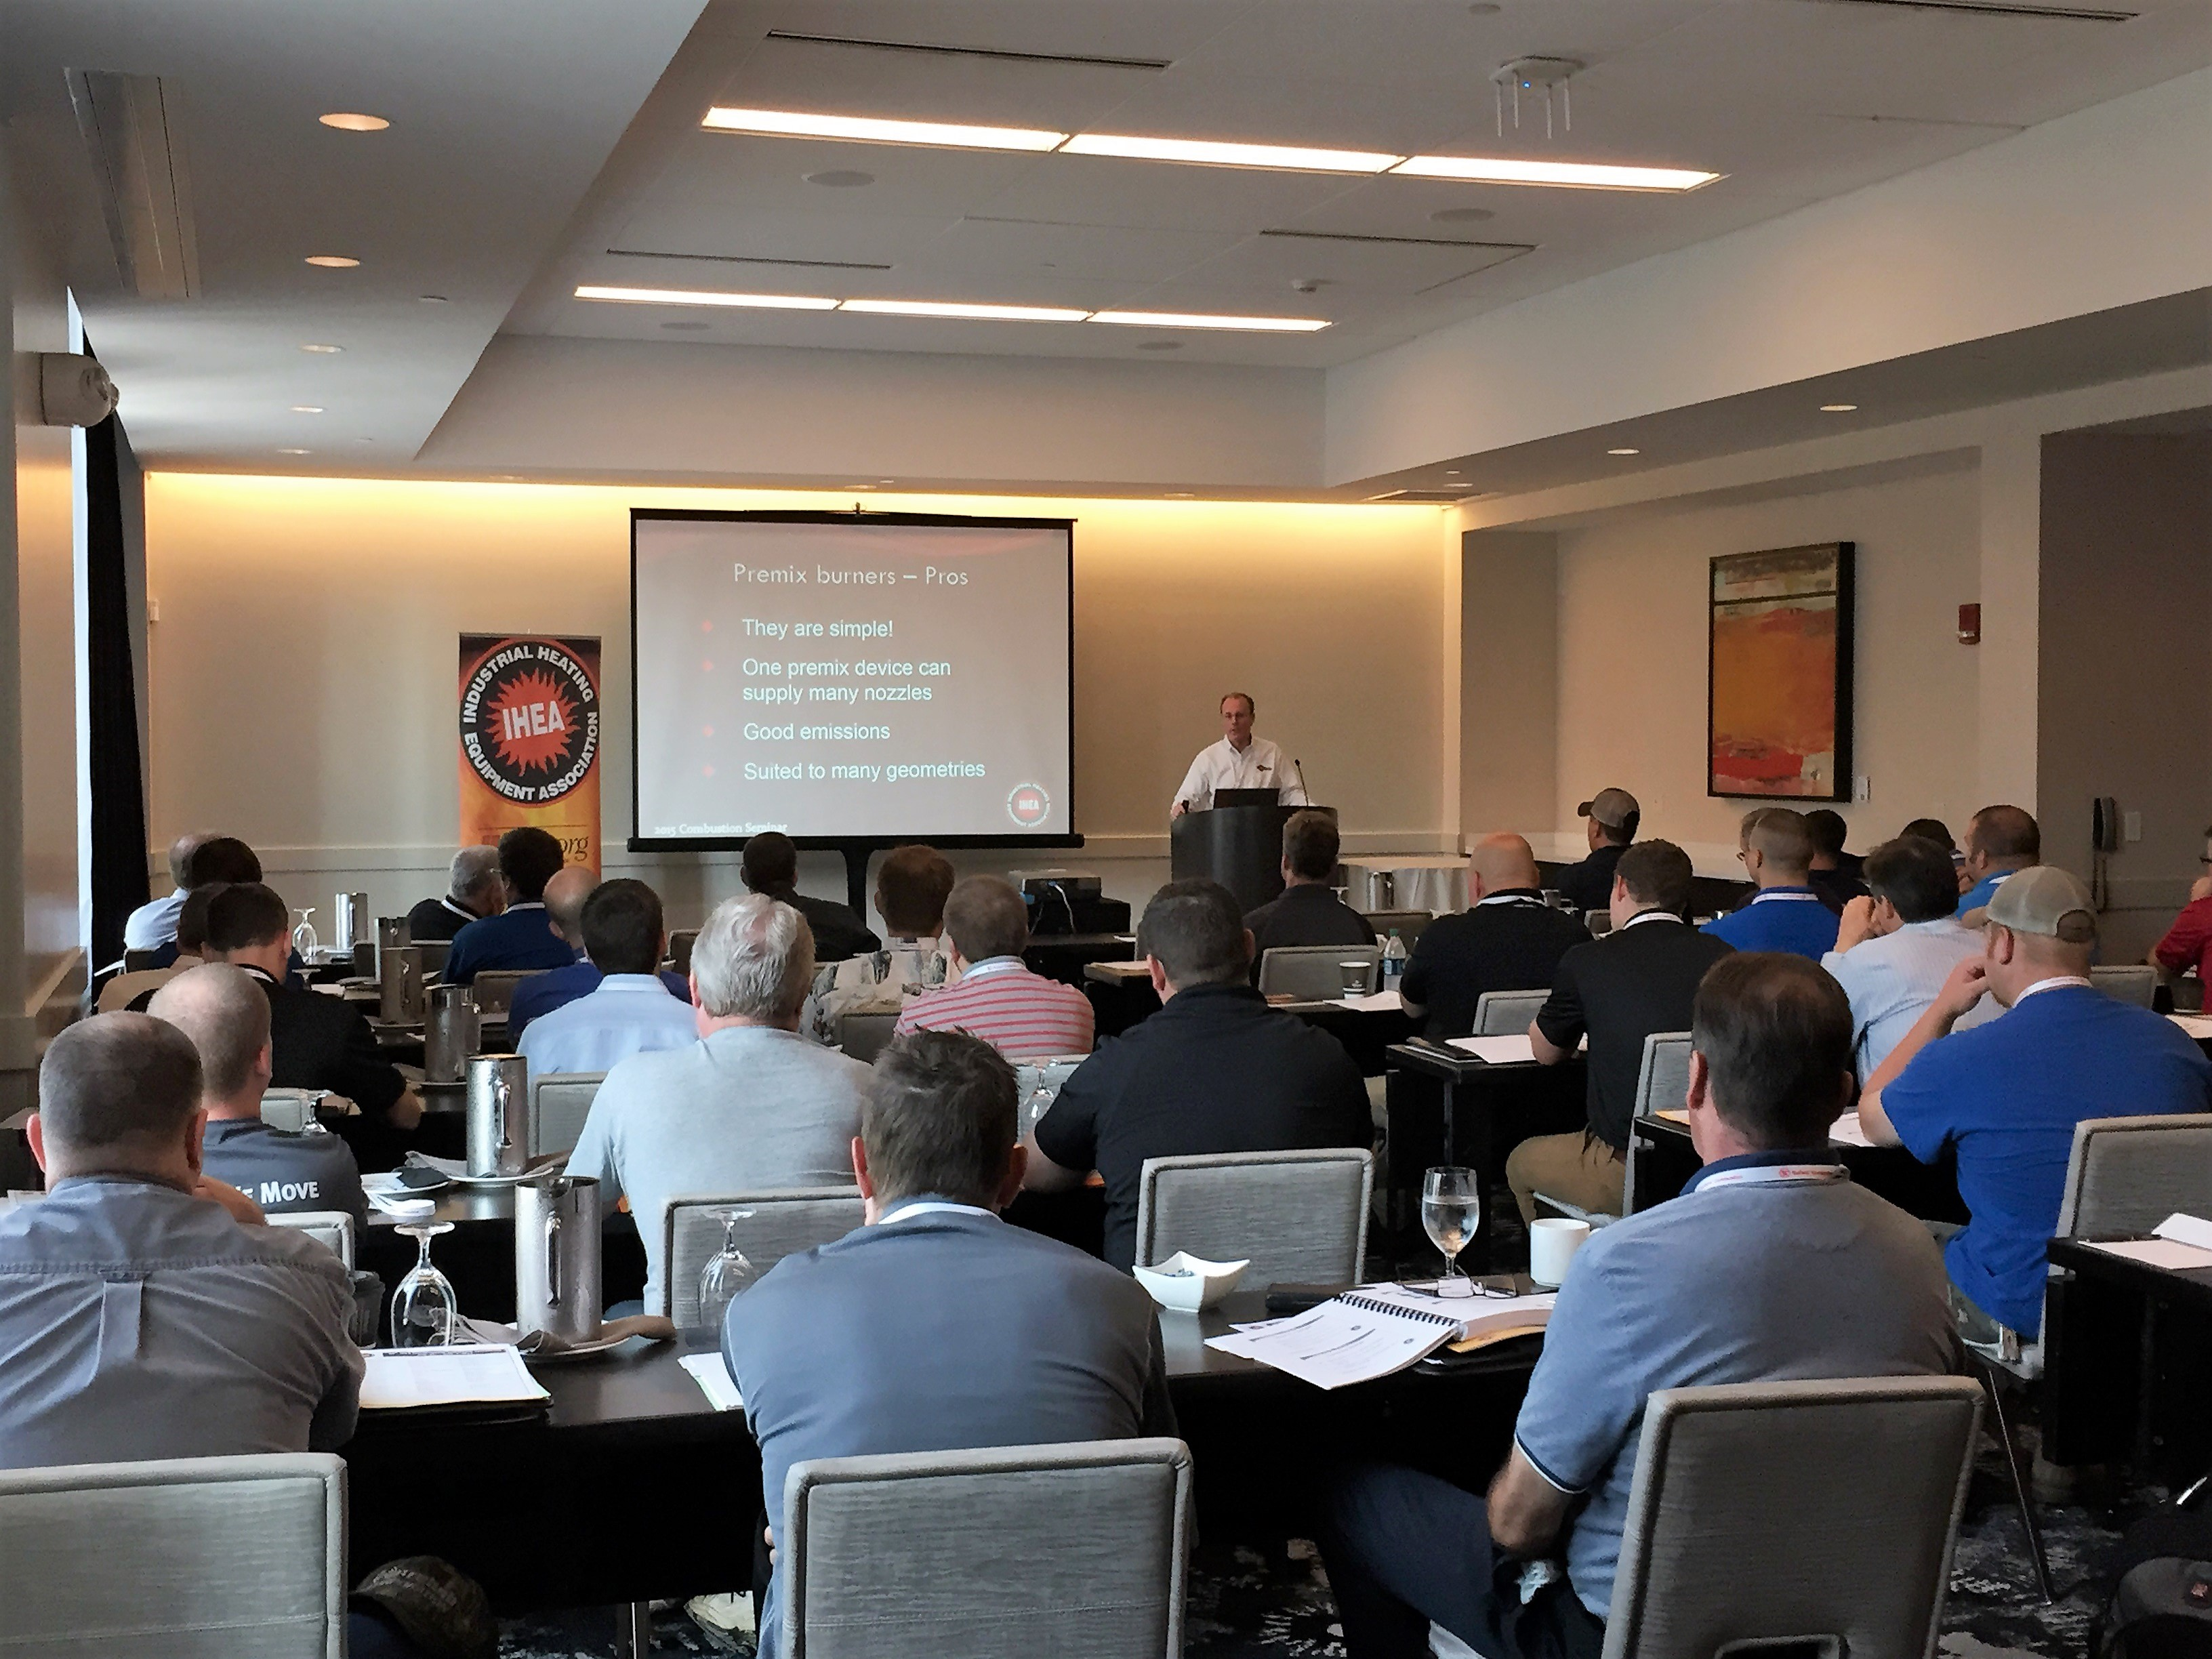 Ihea Fall Seminars To Be Held In Conjunction With Furnaces